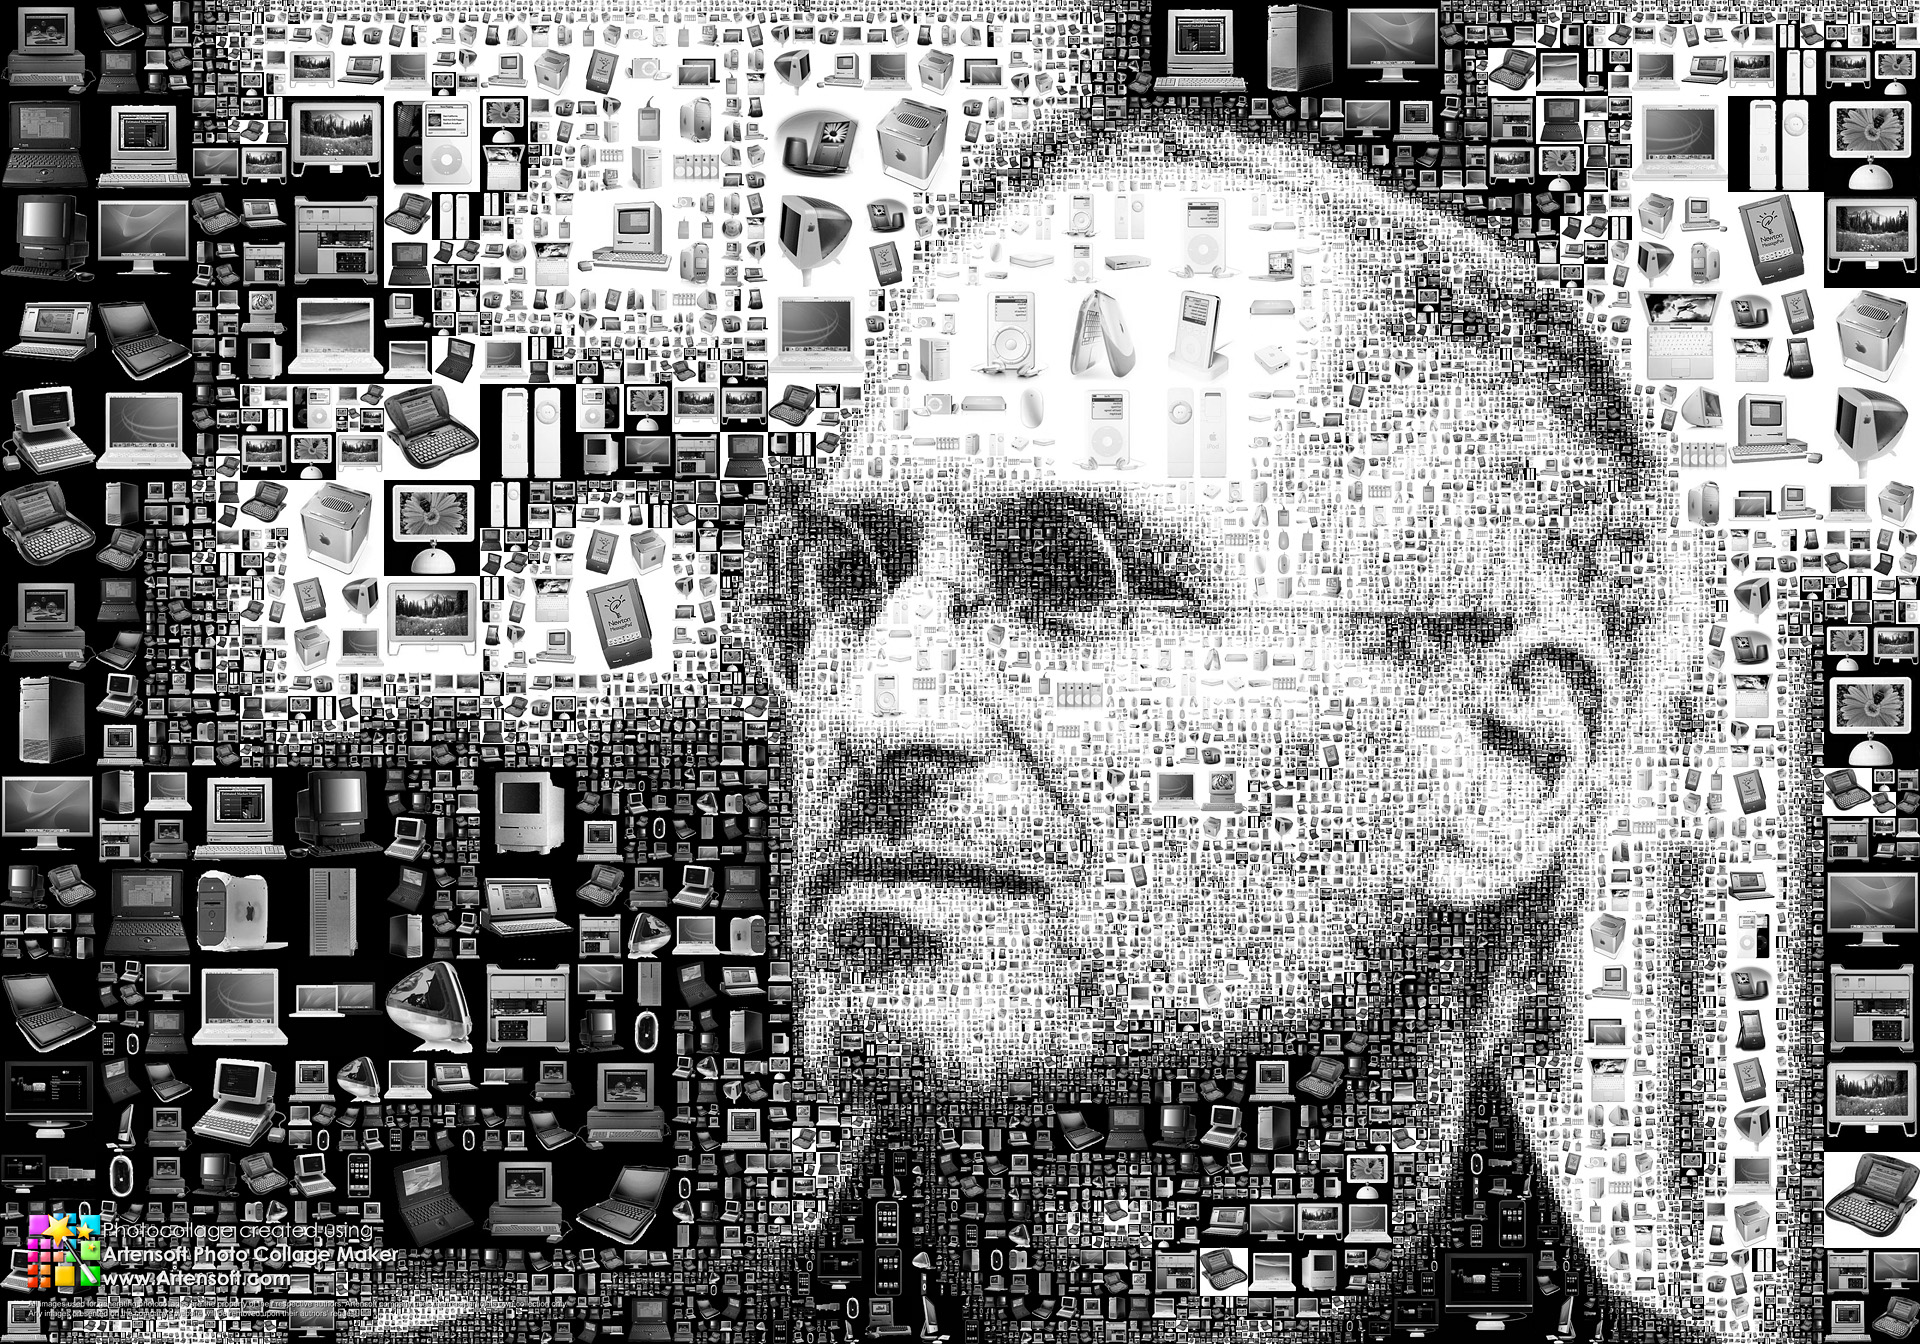 Steve Jobs photo collage